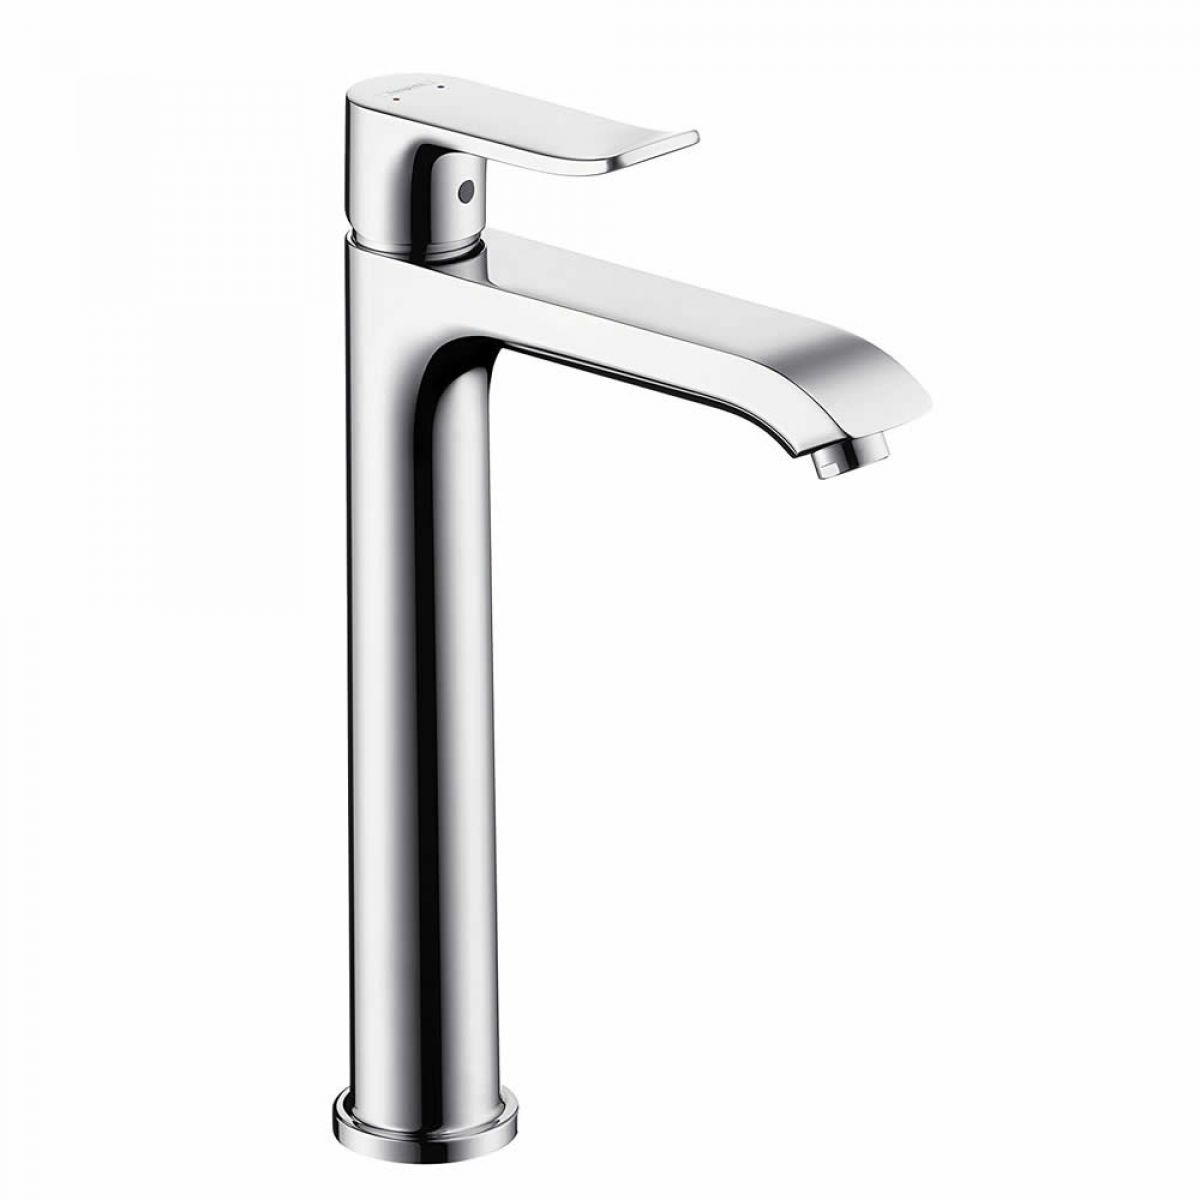 hansgrohe metris 200 tall basin mixer tap uk bathrooms. Black Bedroom Furniture Sets. Home Design Ideas